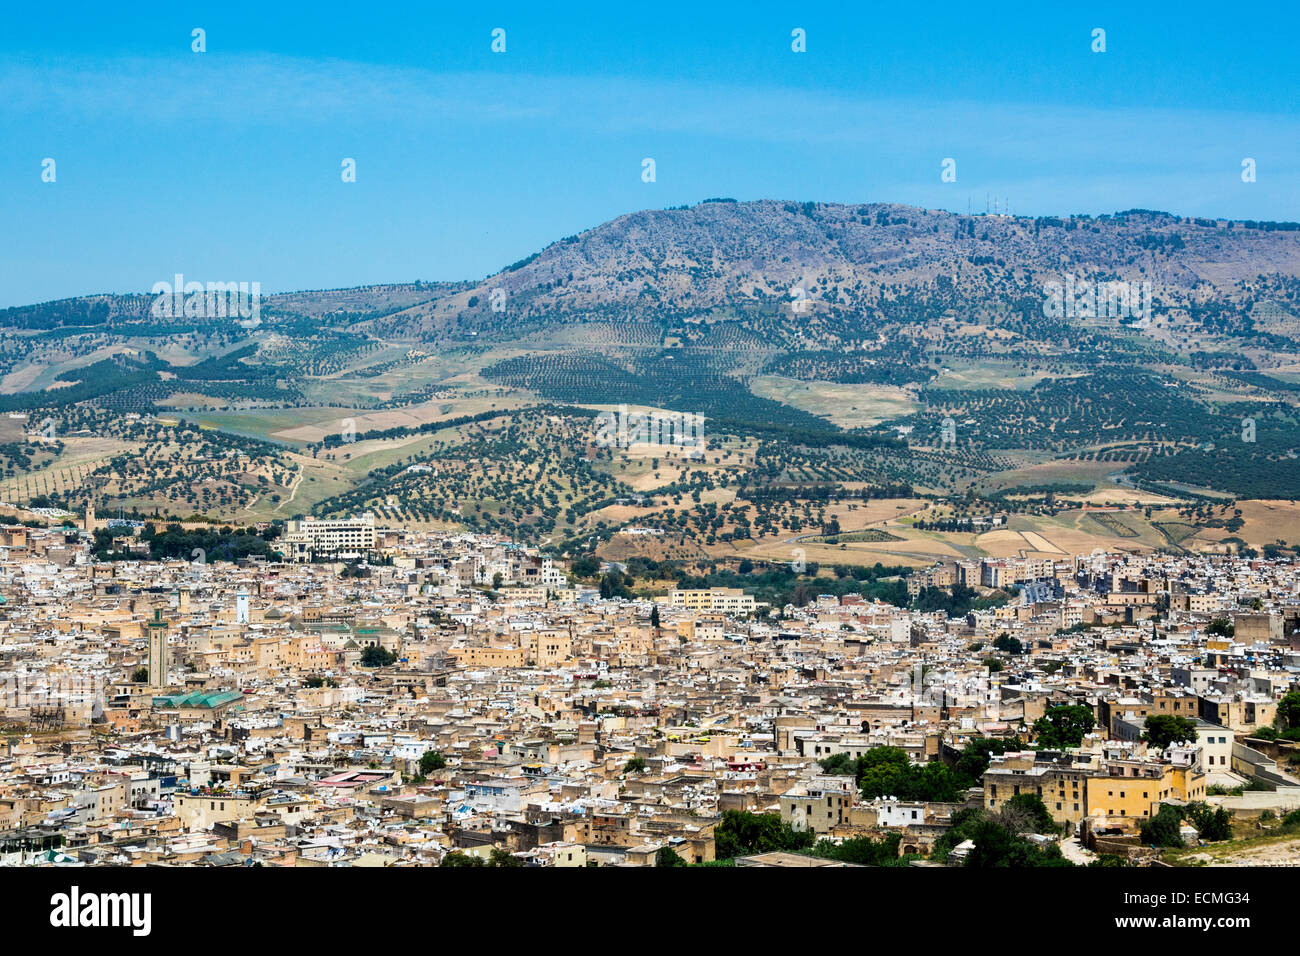 A view of Fes, Fez, Morocco - Stock Image